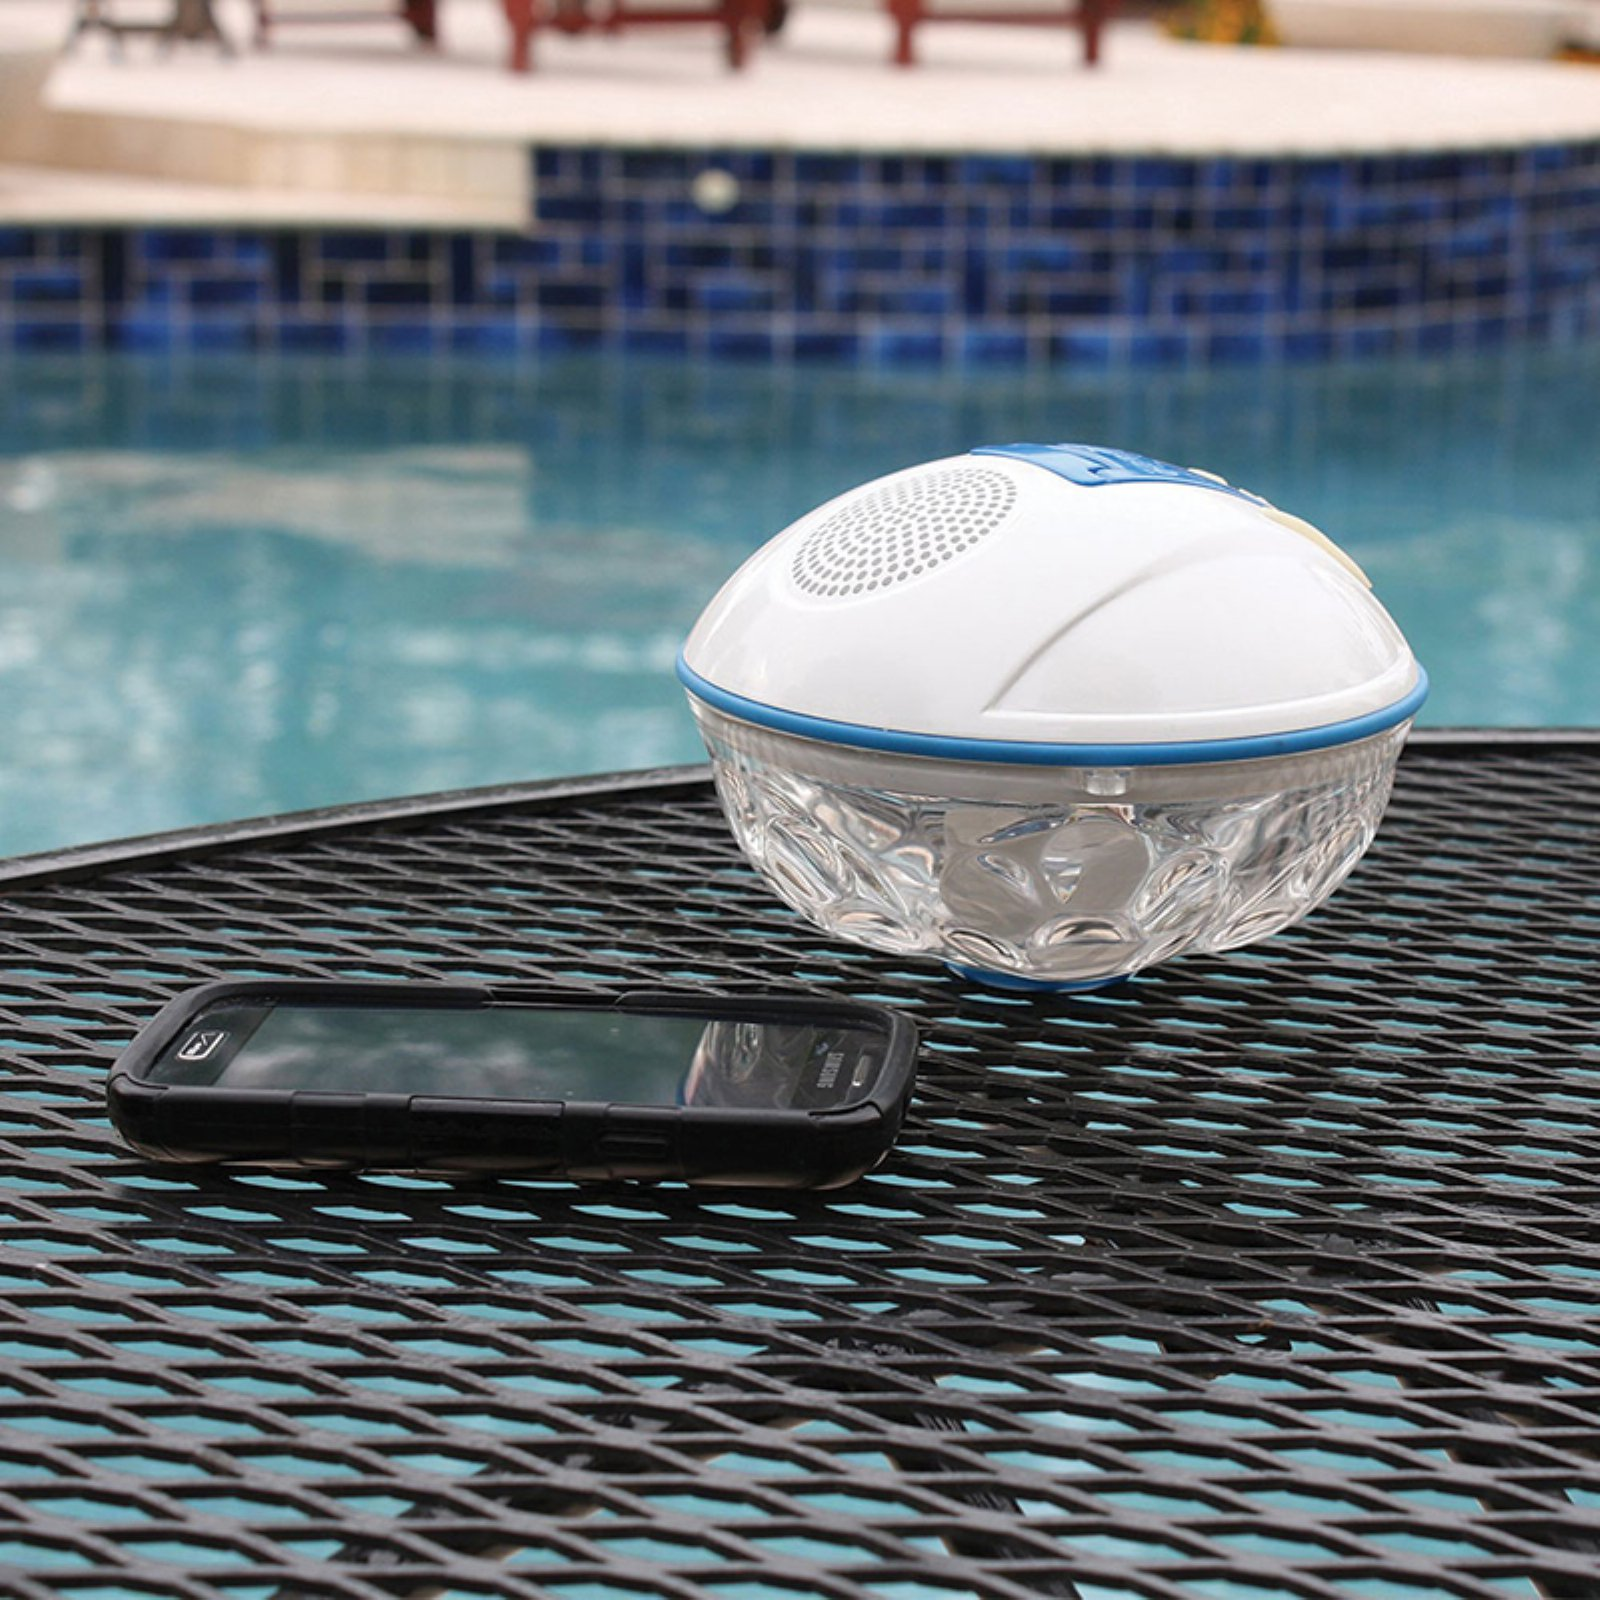 Game Bluetooth Wireless Speaker and Light Show for Swimming Pools